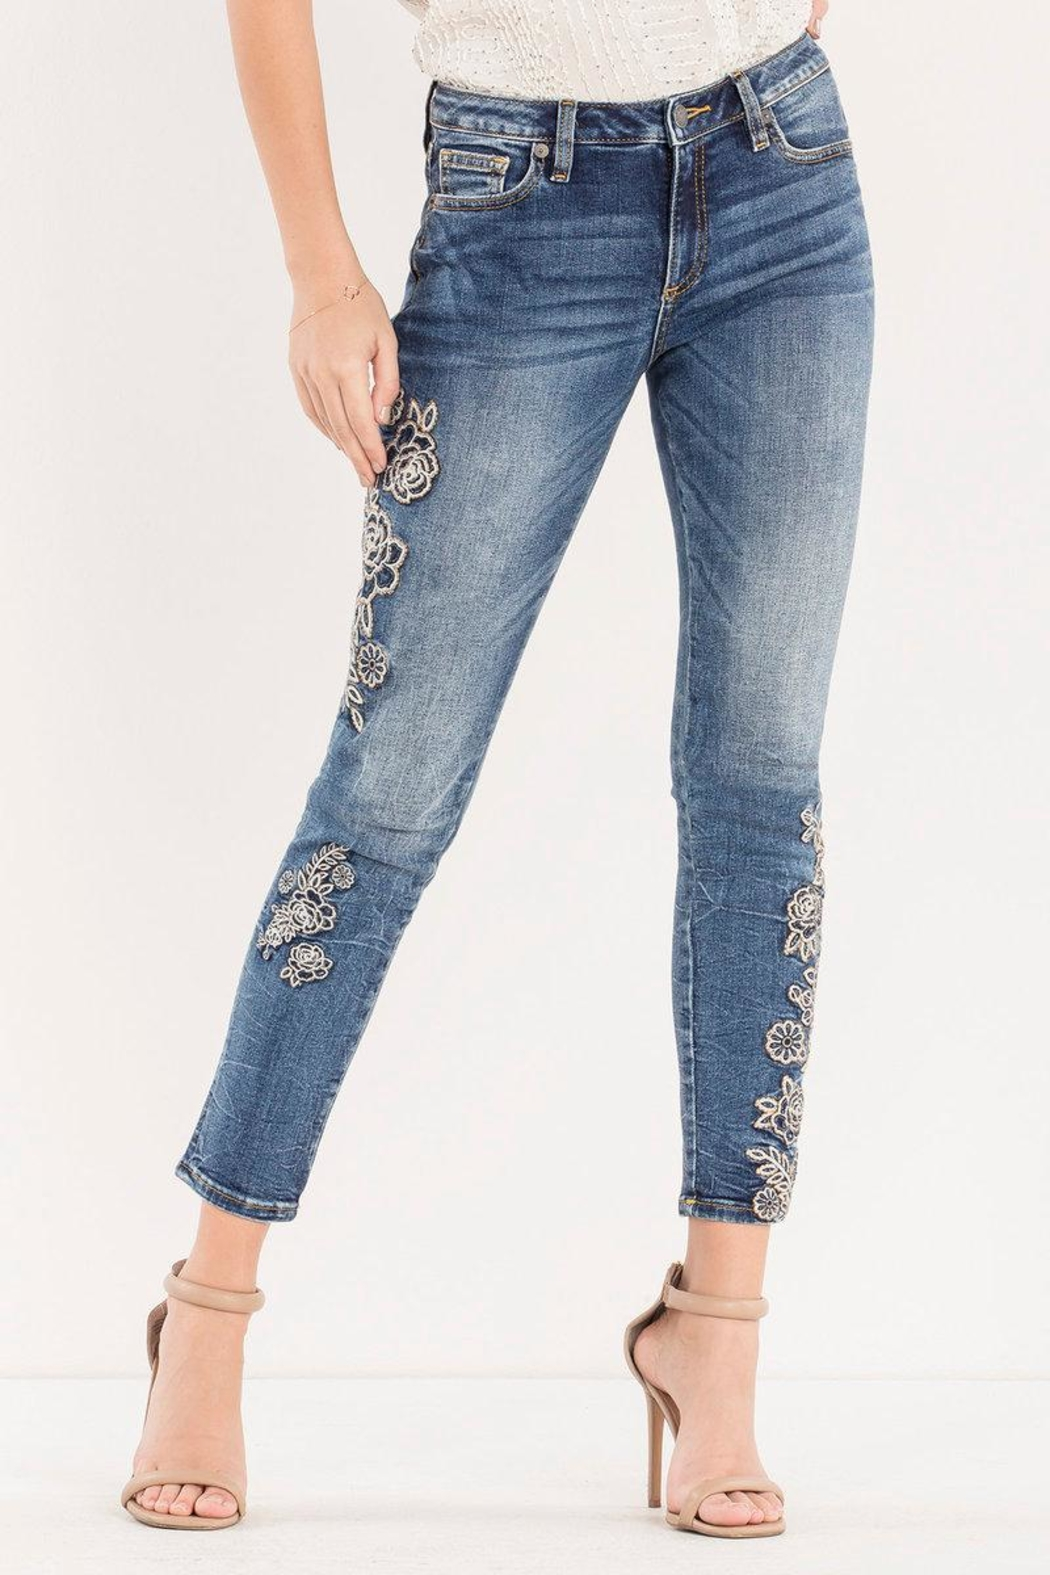 Miss Me Rose-Embroidered Midrise Ankle-Skinny - Main Image